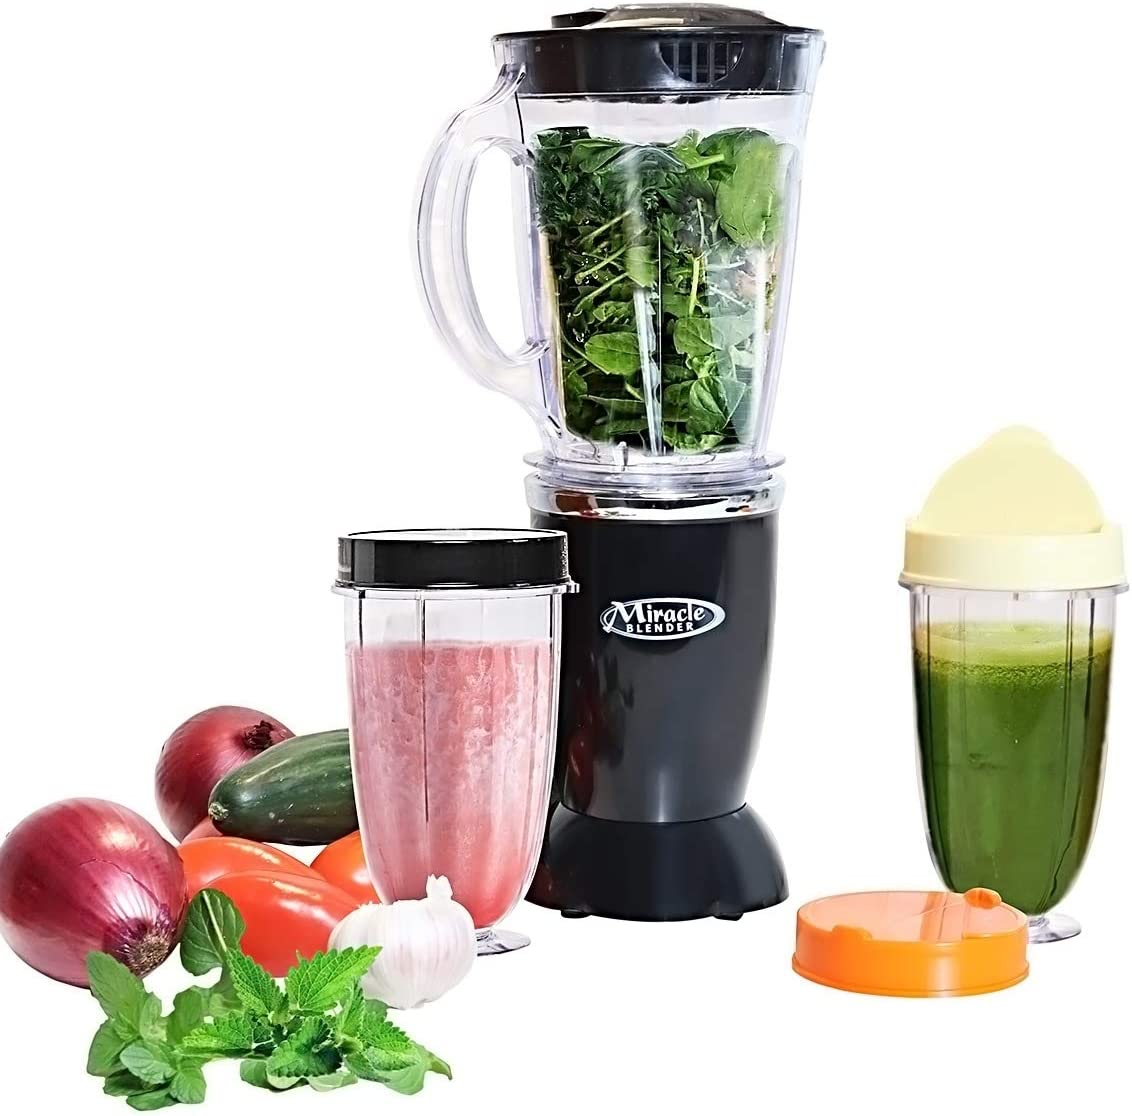 Total Chef Miracle Portable Blender with 12-Piece Set - Kitchen Countertop Blender Features Easy Ice Crushing for Milkshakes and Smoothies - Includes Recipe Guide, Dishwasher Safe